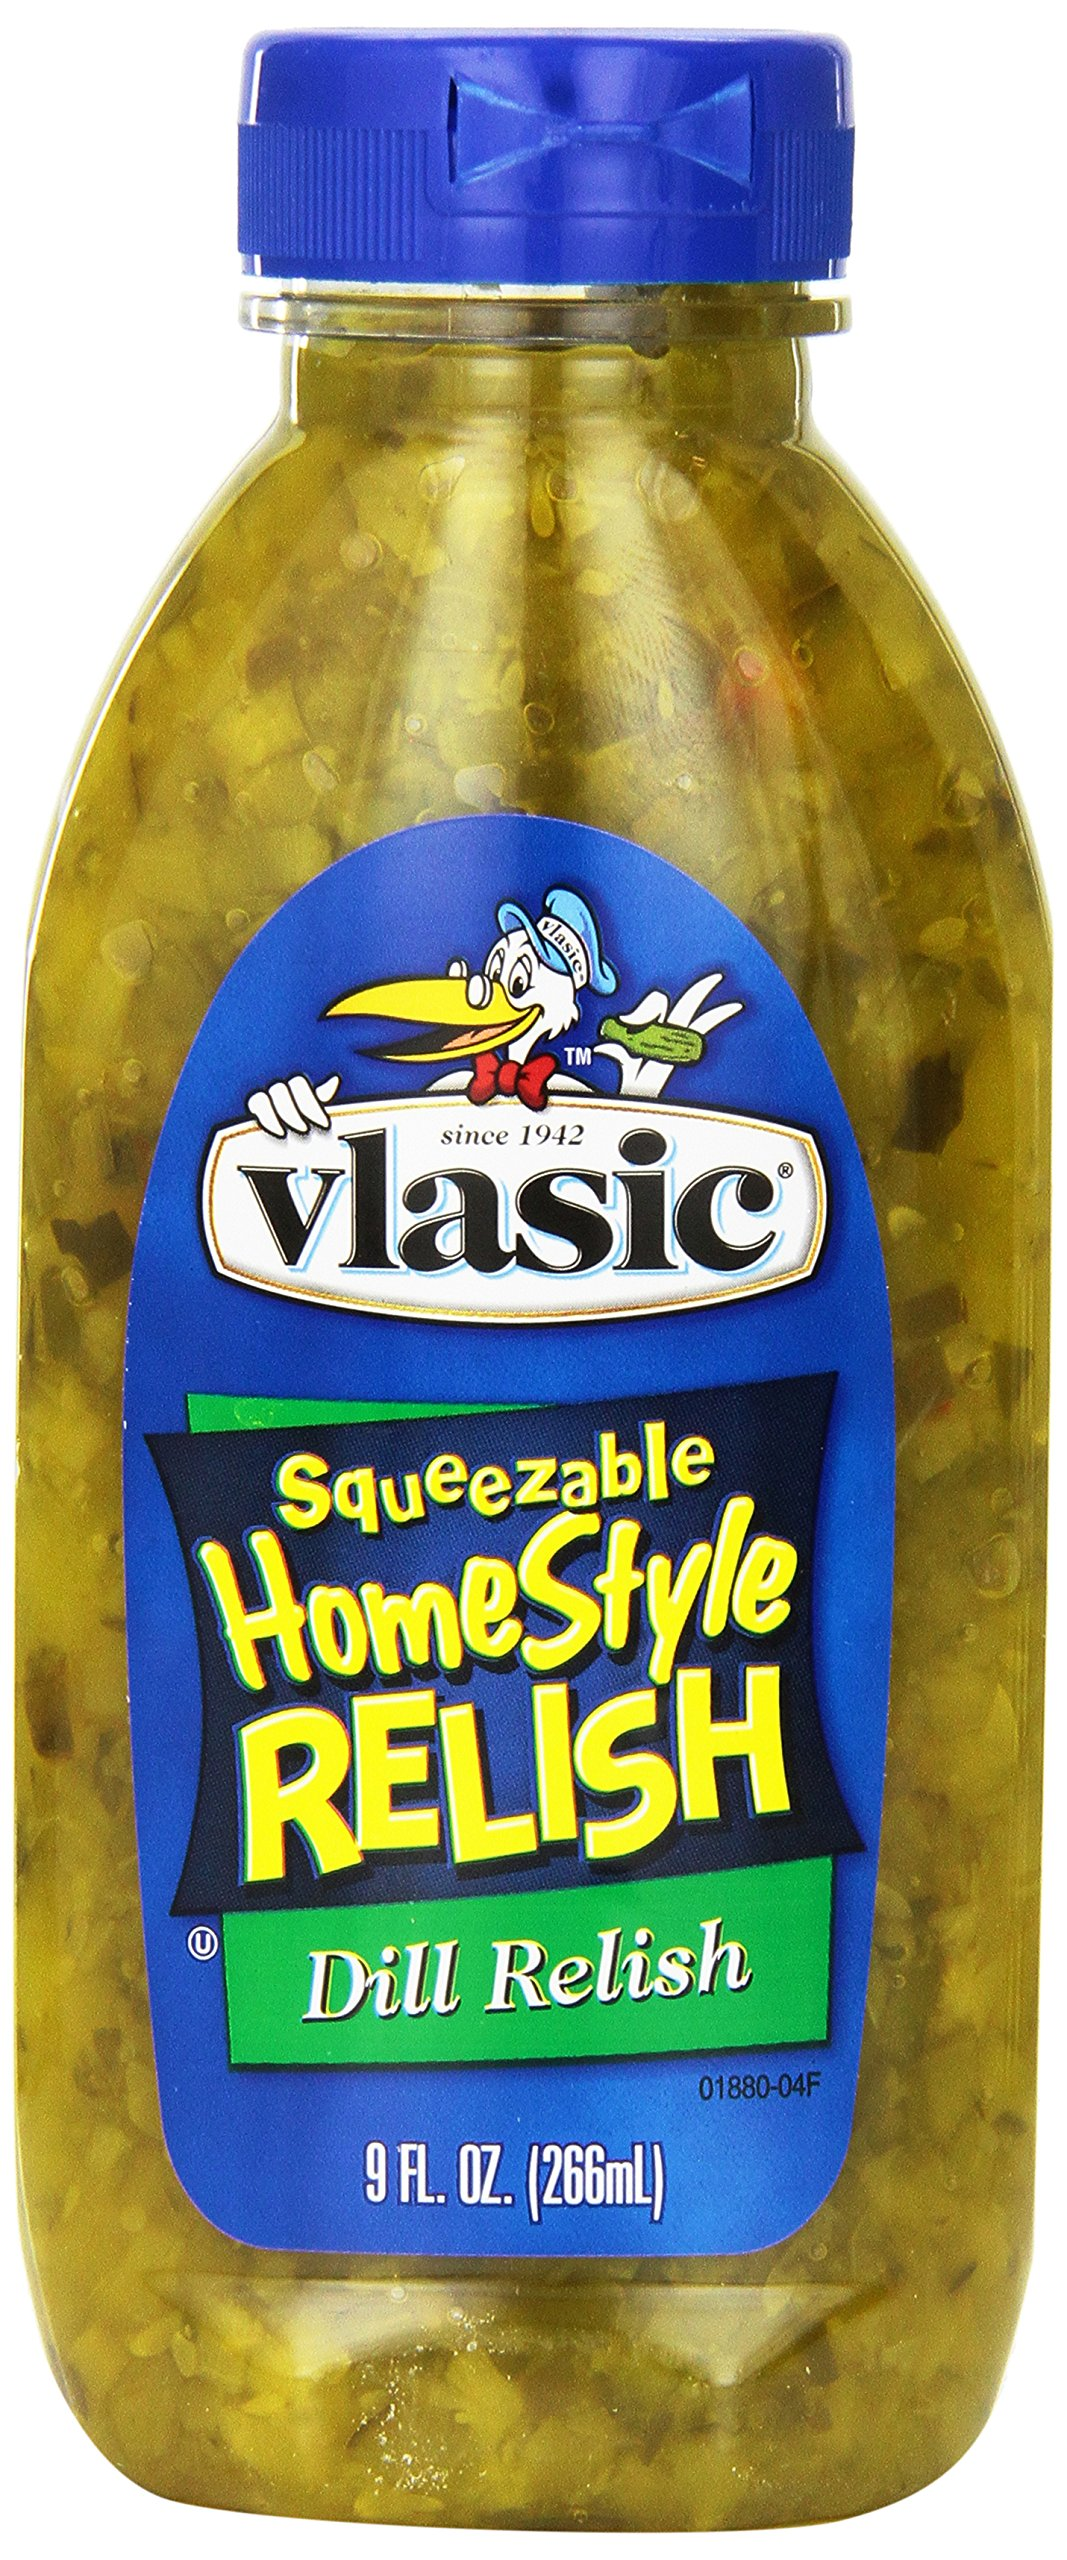 Vlasic Squeezeable Homestyle Pickle Relish, Dill, 9 Ounce